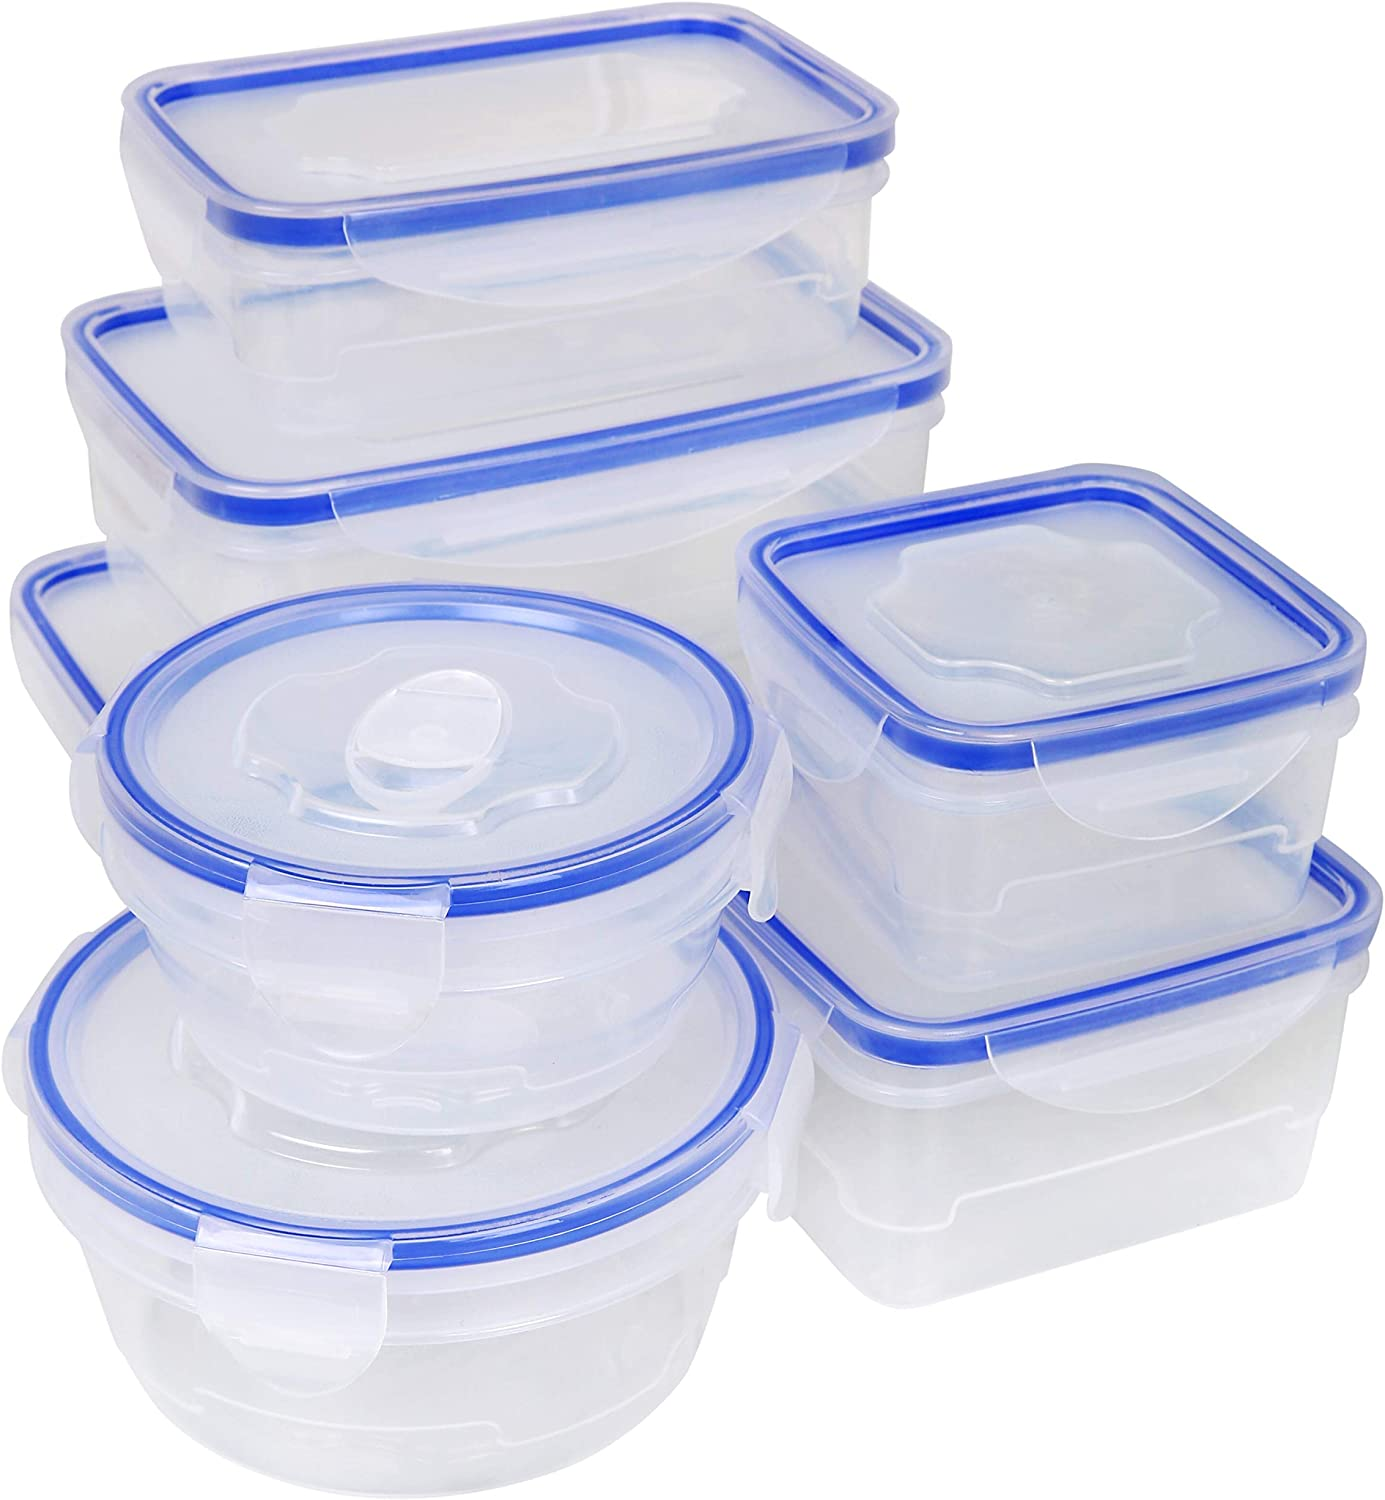 Kitchen Details, Kitchen Pantry, BPA Free 16 Piece Food Storage Container Set with Airtight, Clip-Lock Lids, Teal